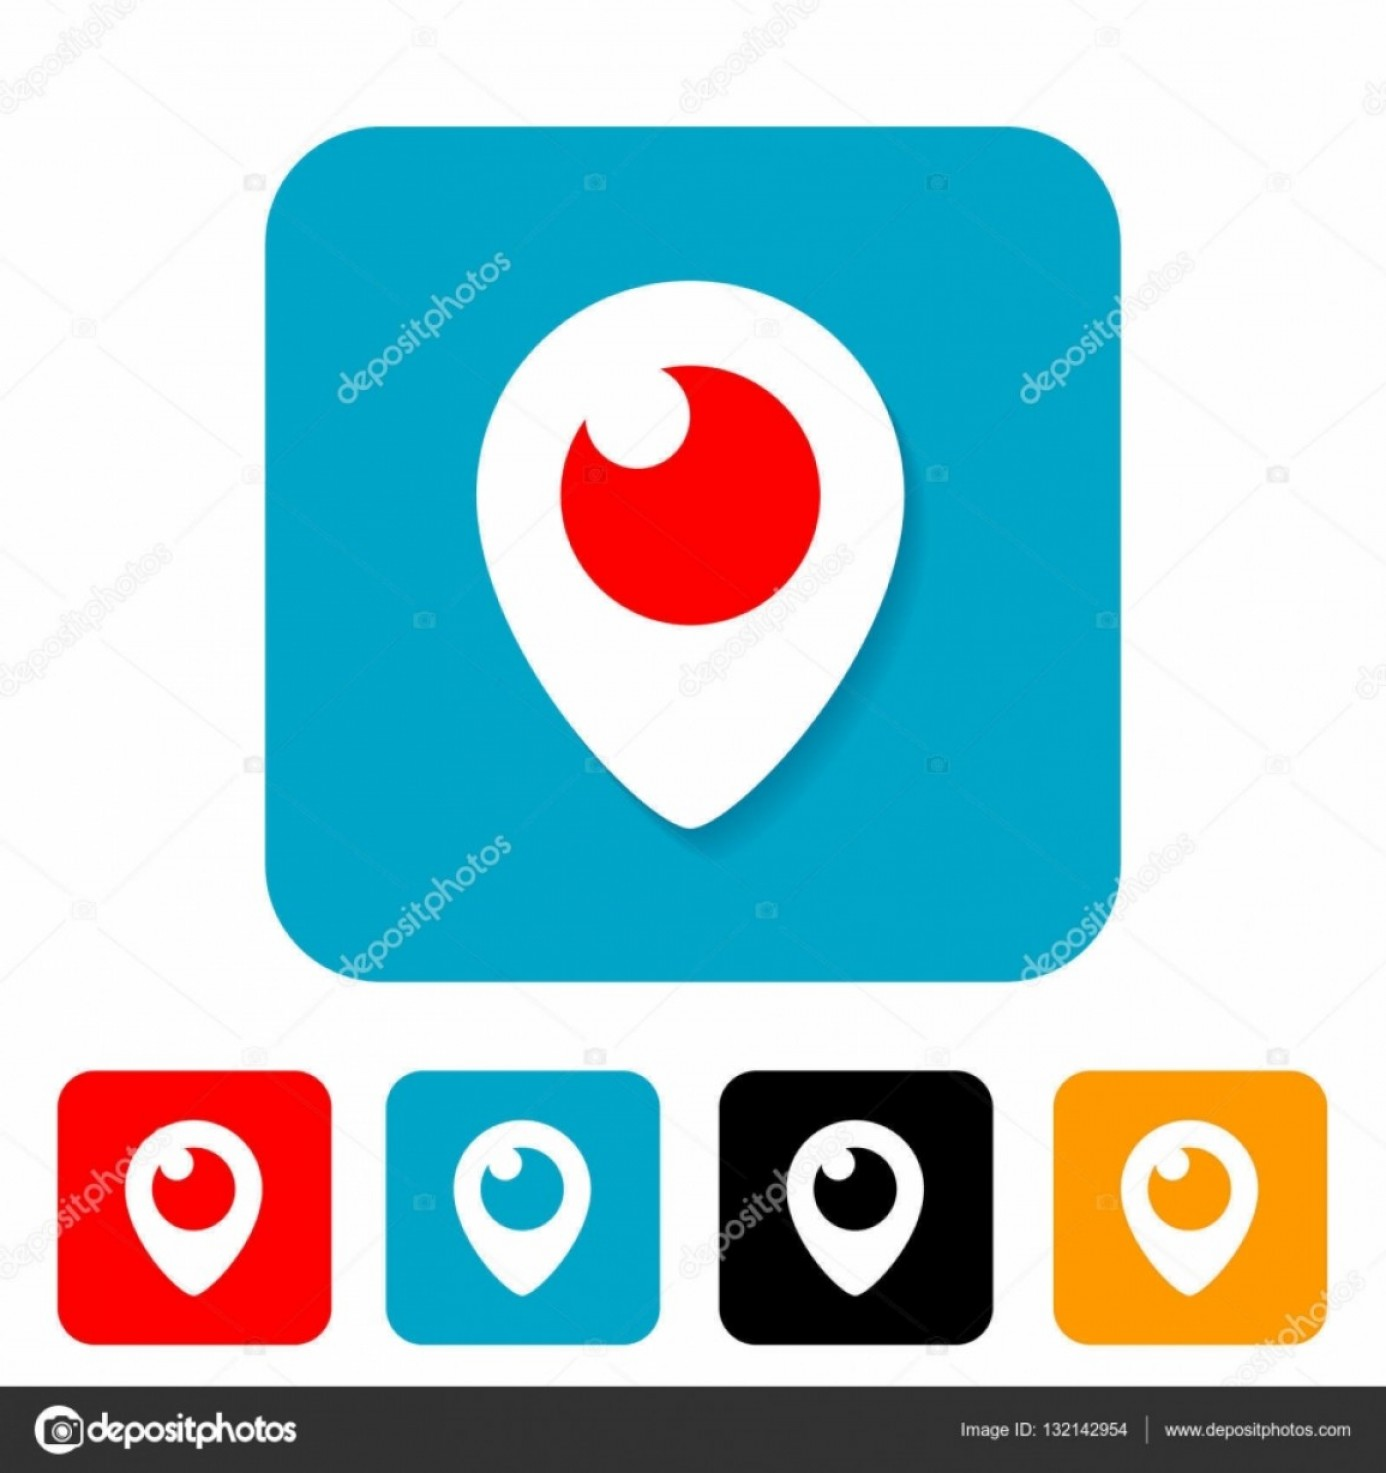 Periscope Logo Vector: Stock Illustration Periscope Icon Vector Illustration